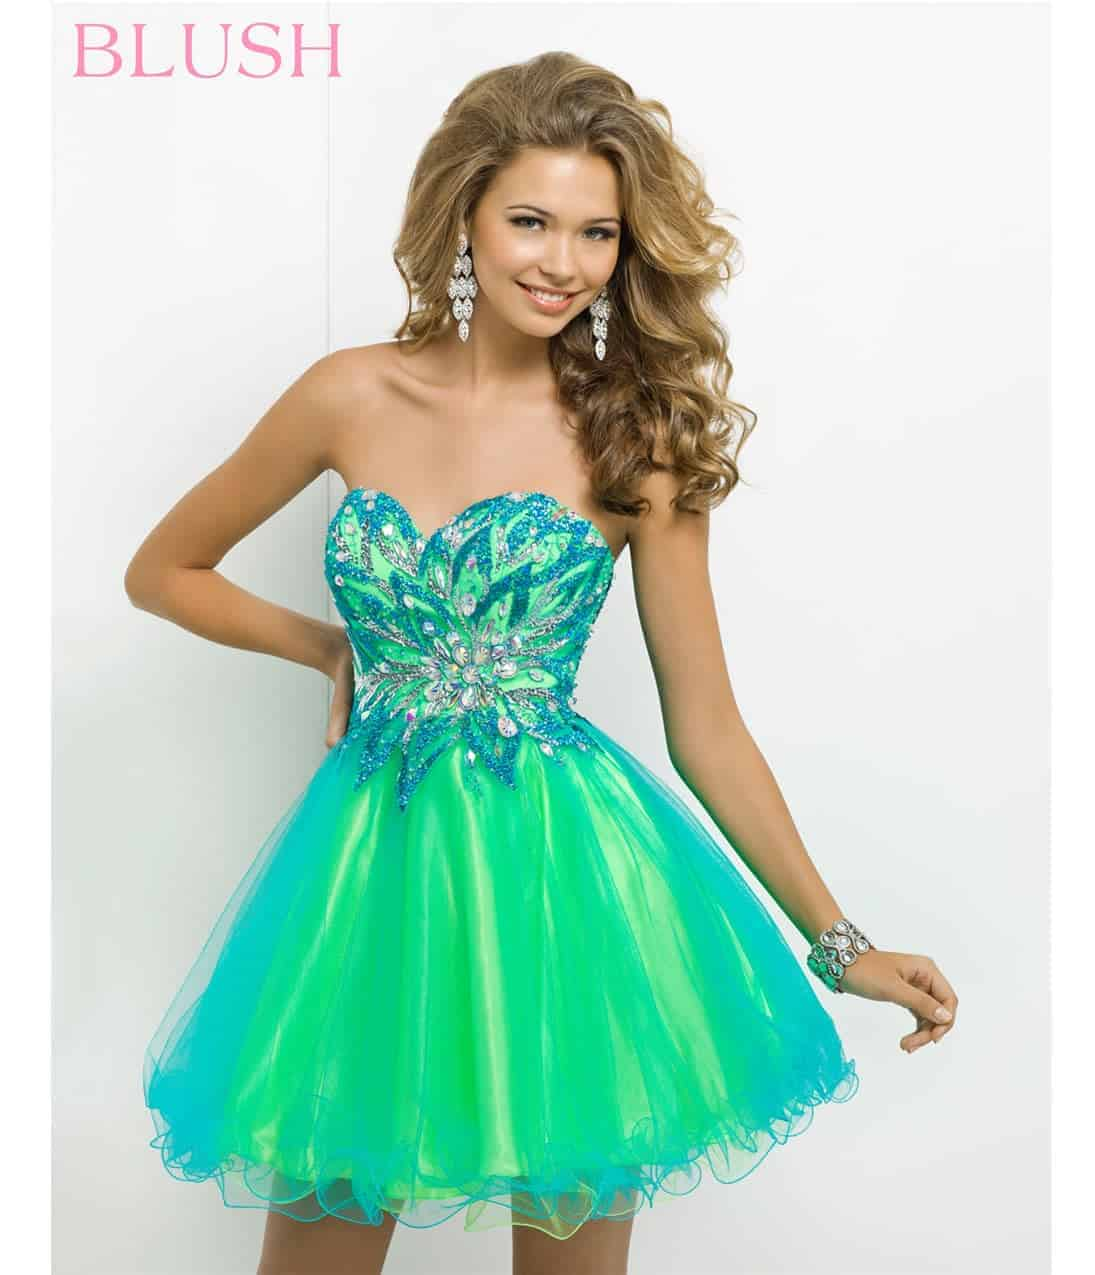 Stunning 8 Grade Prom Dresses Pictures - Styles & Ideas 2018 - sperr.us